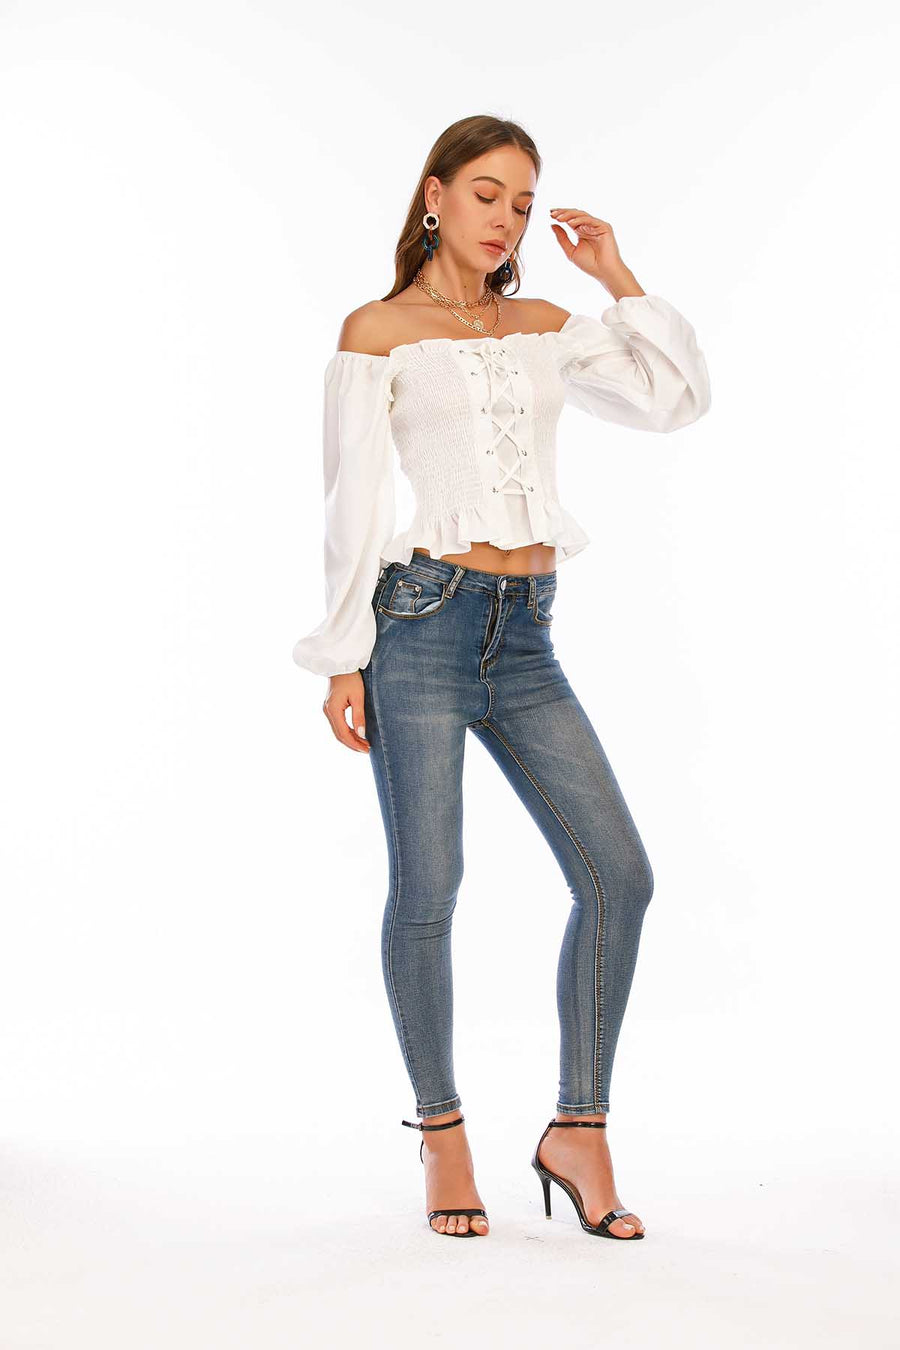 Mantra Pakistan White Smocked Top | Western Wear